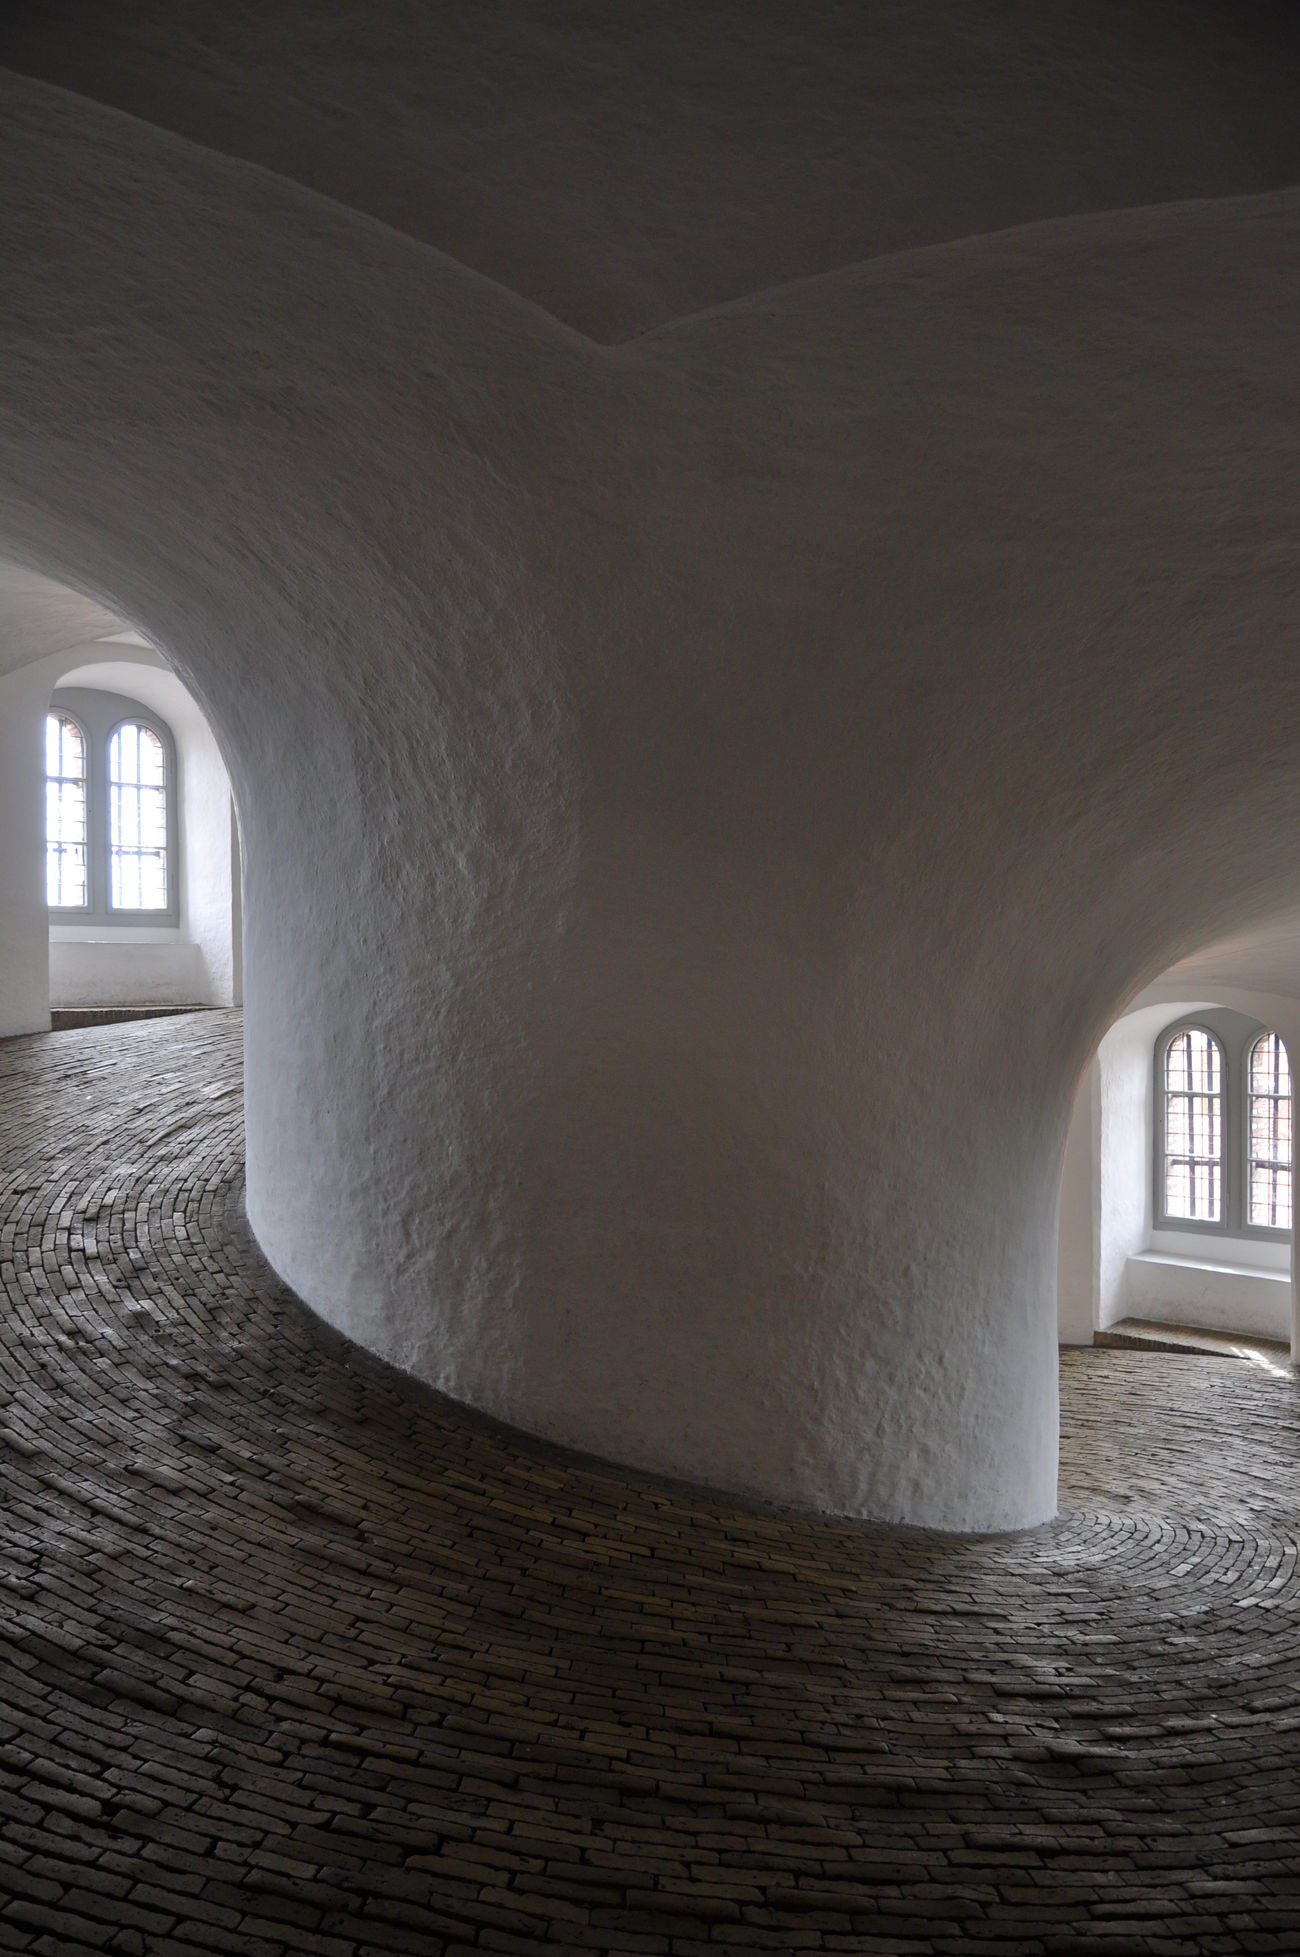 Architecture Built Structure Copenhagen, Denmark Day Indoors  Kopenhagen Ligth And Shadow No People Old Buildings Round Round Tower Sunlight Tower Window EyeEmNewHere